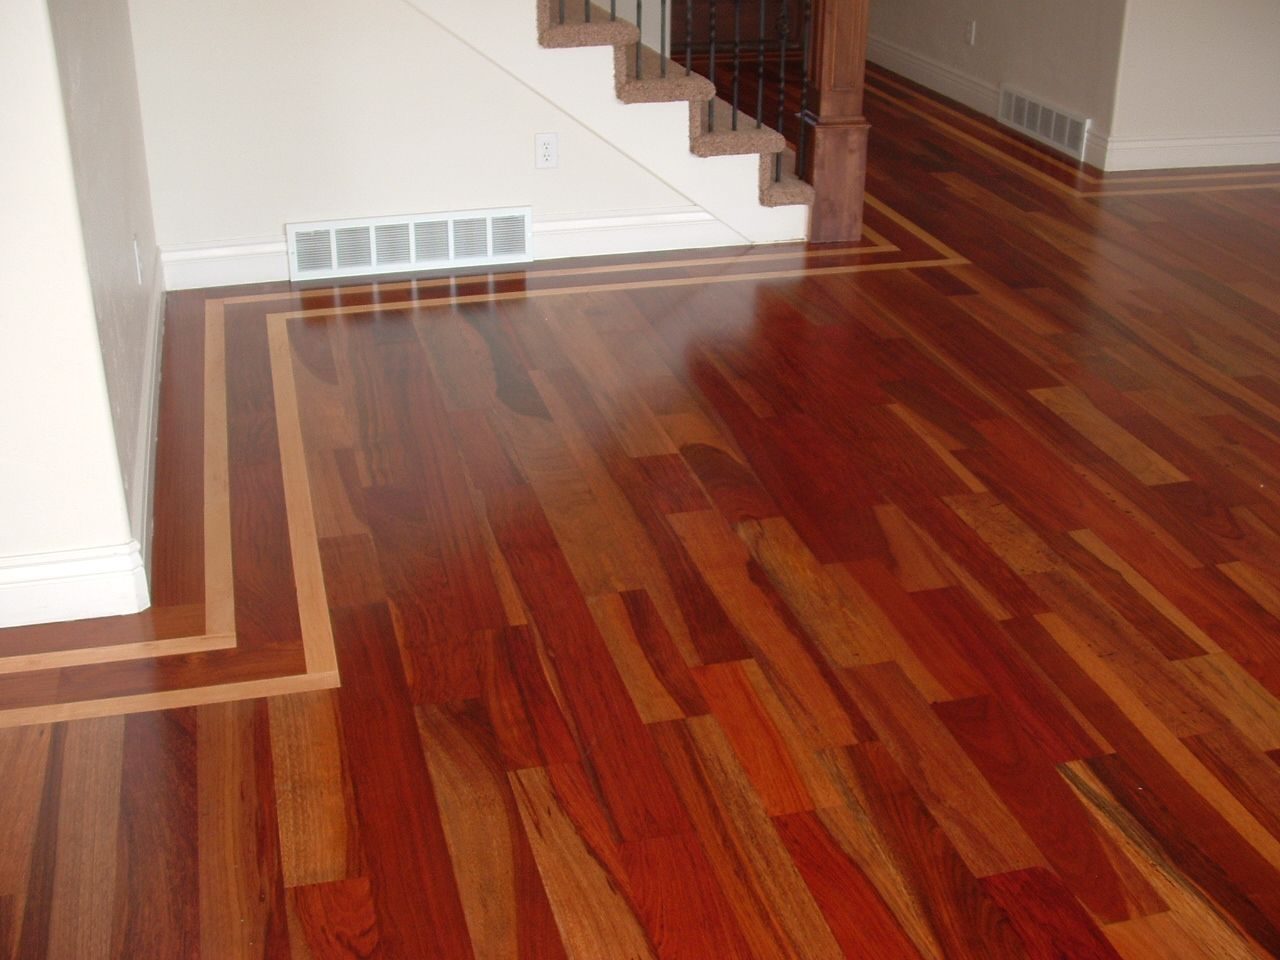 Brazilian cherry hardwood flooring flooring ideas home for Hardwood floor ideas pictures